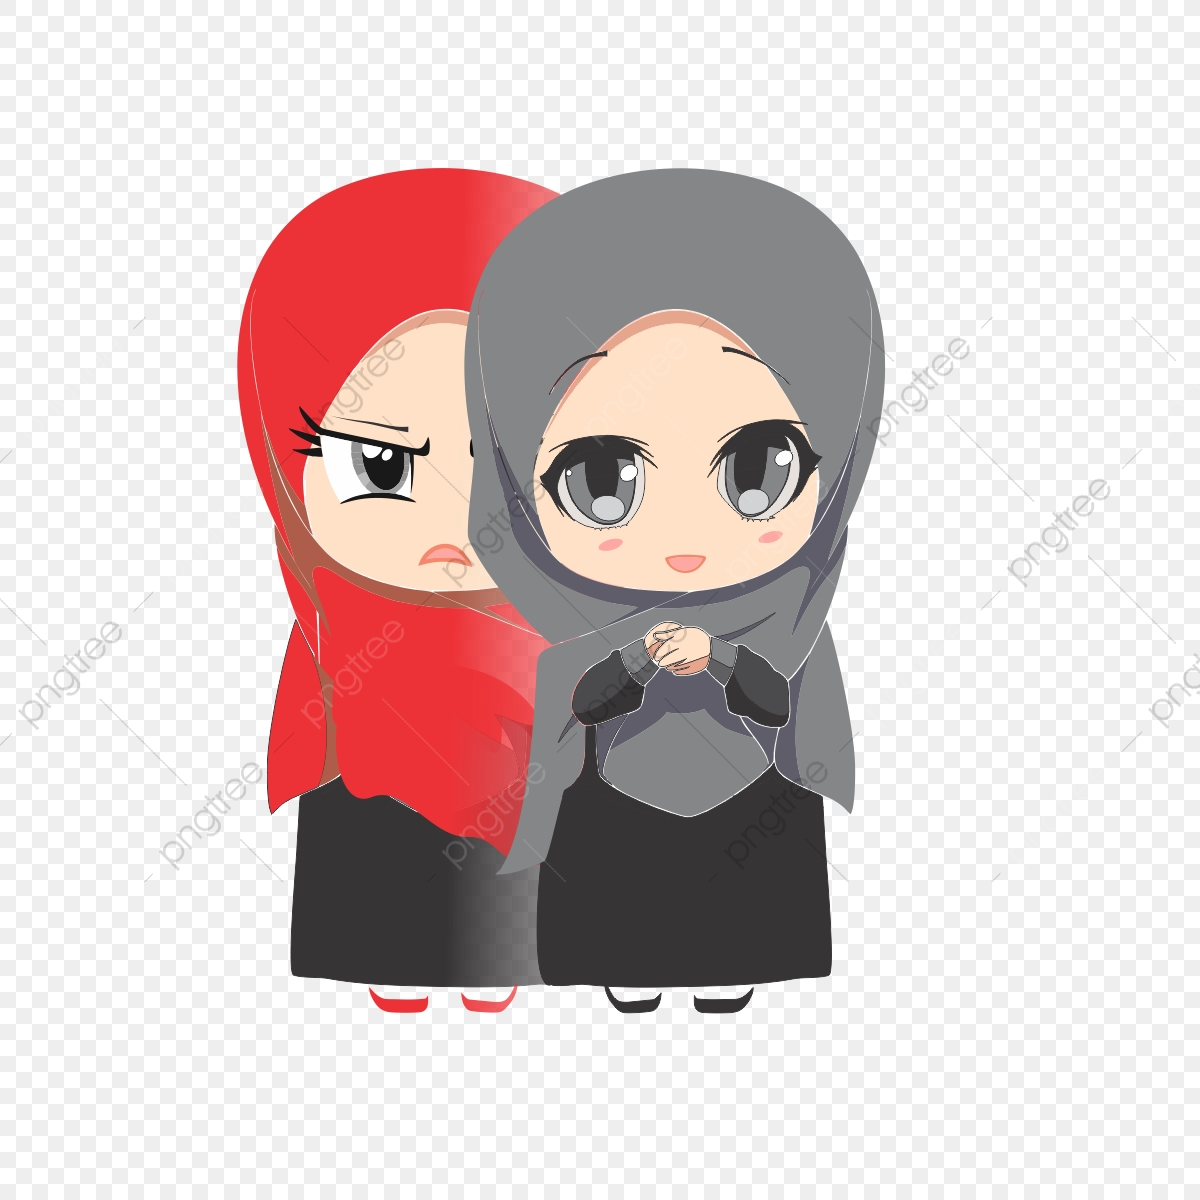 Commercial use resource upgrade to premium plan and get license authorization upgradenow · muslim cartoon girl